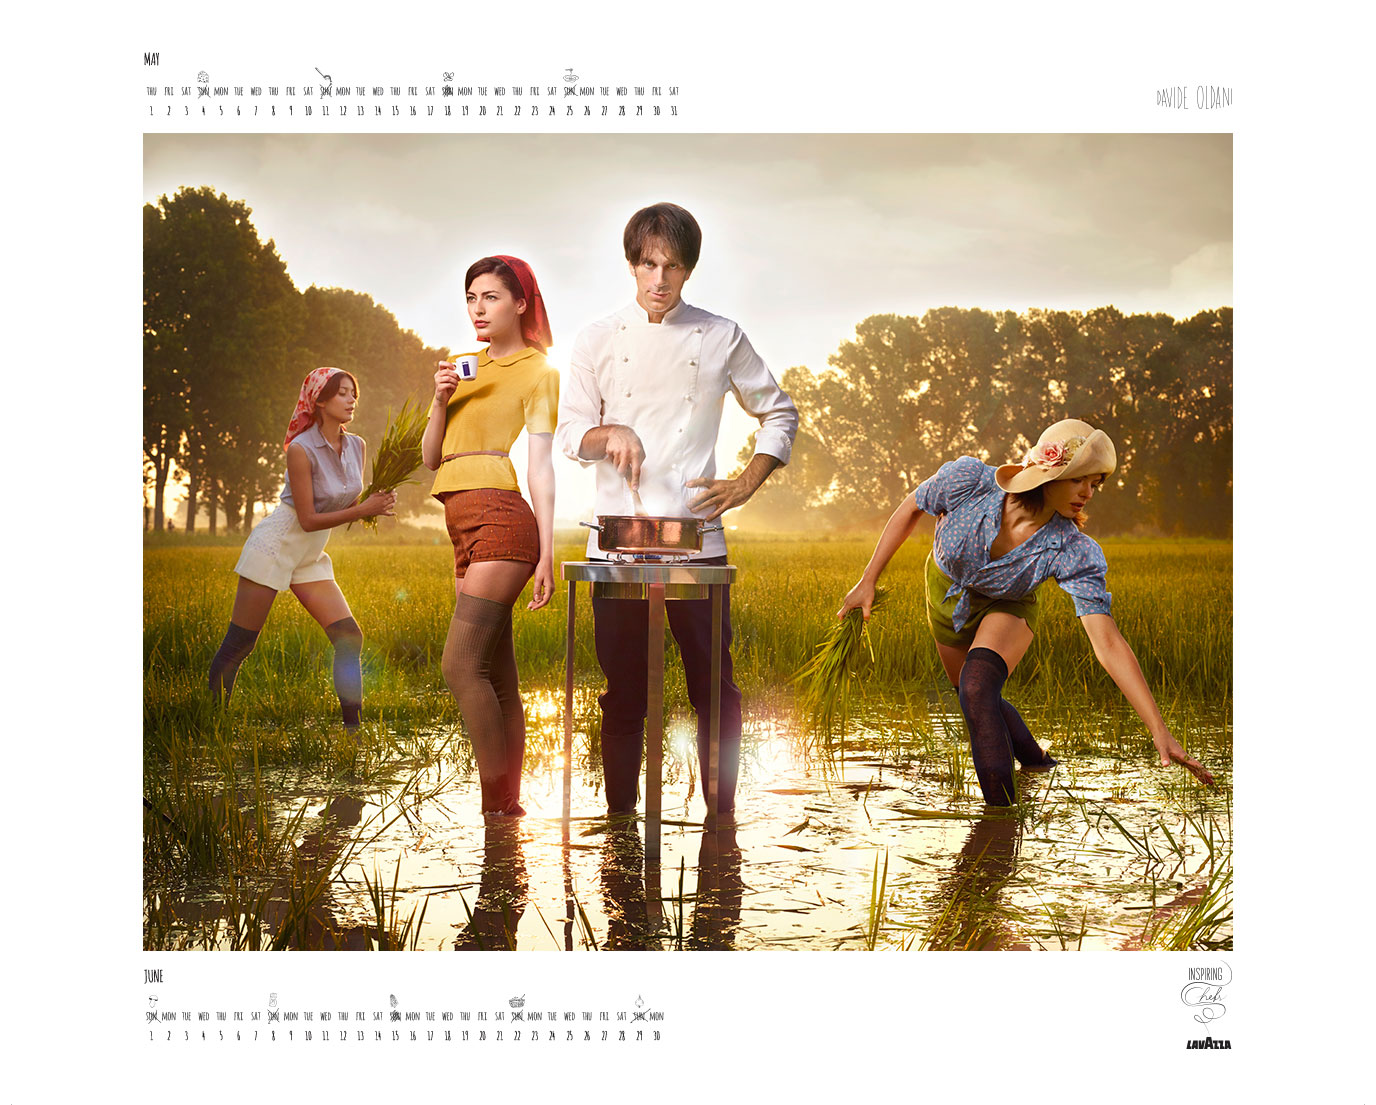 Lavazza_calendar_2014_May-June